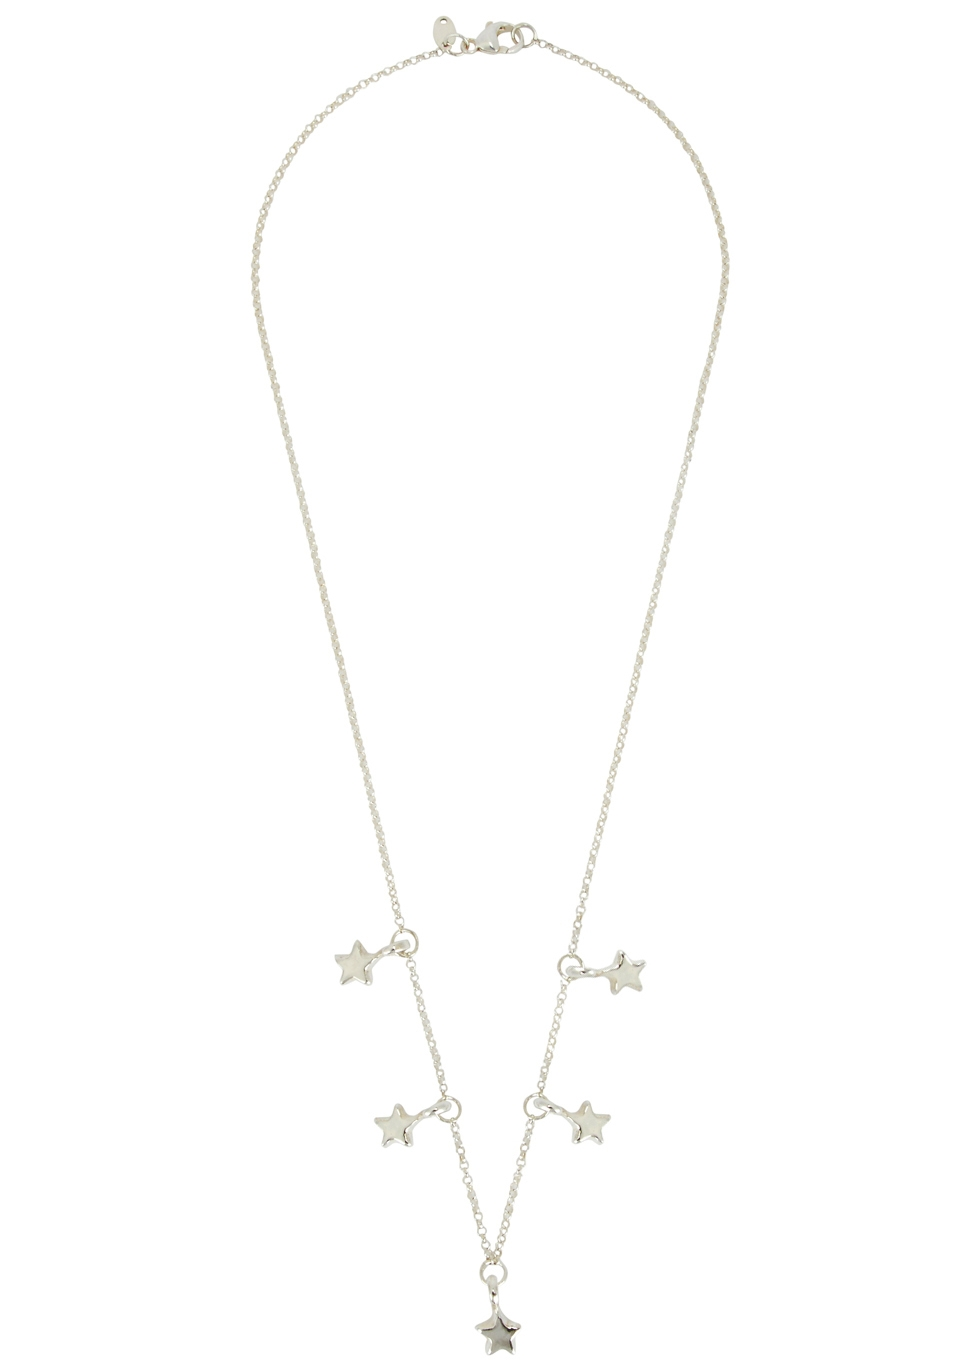 MUSE STUDIO 5 STAR STERLING SILVER NECKLACE